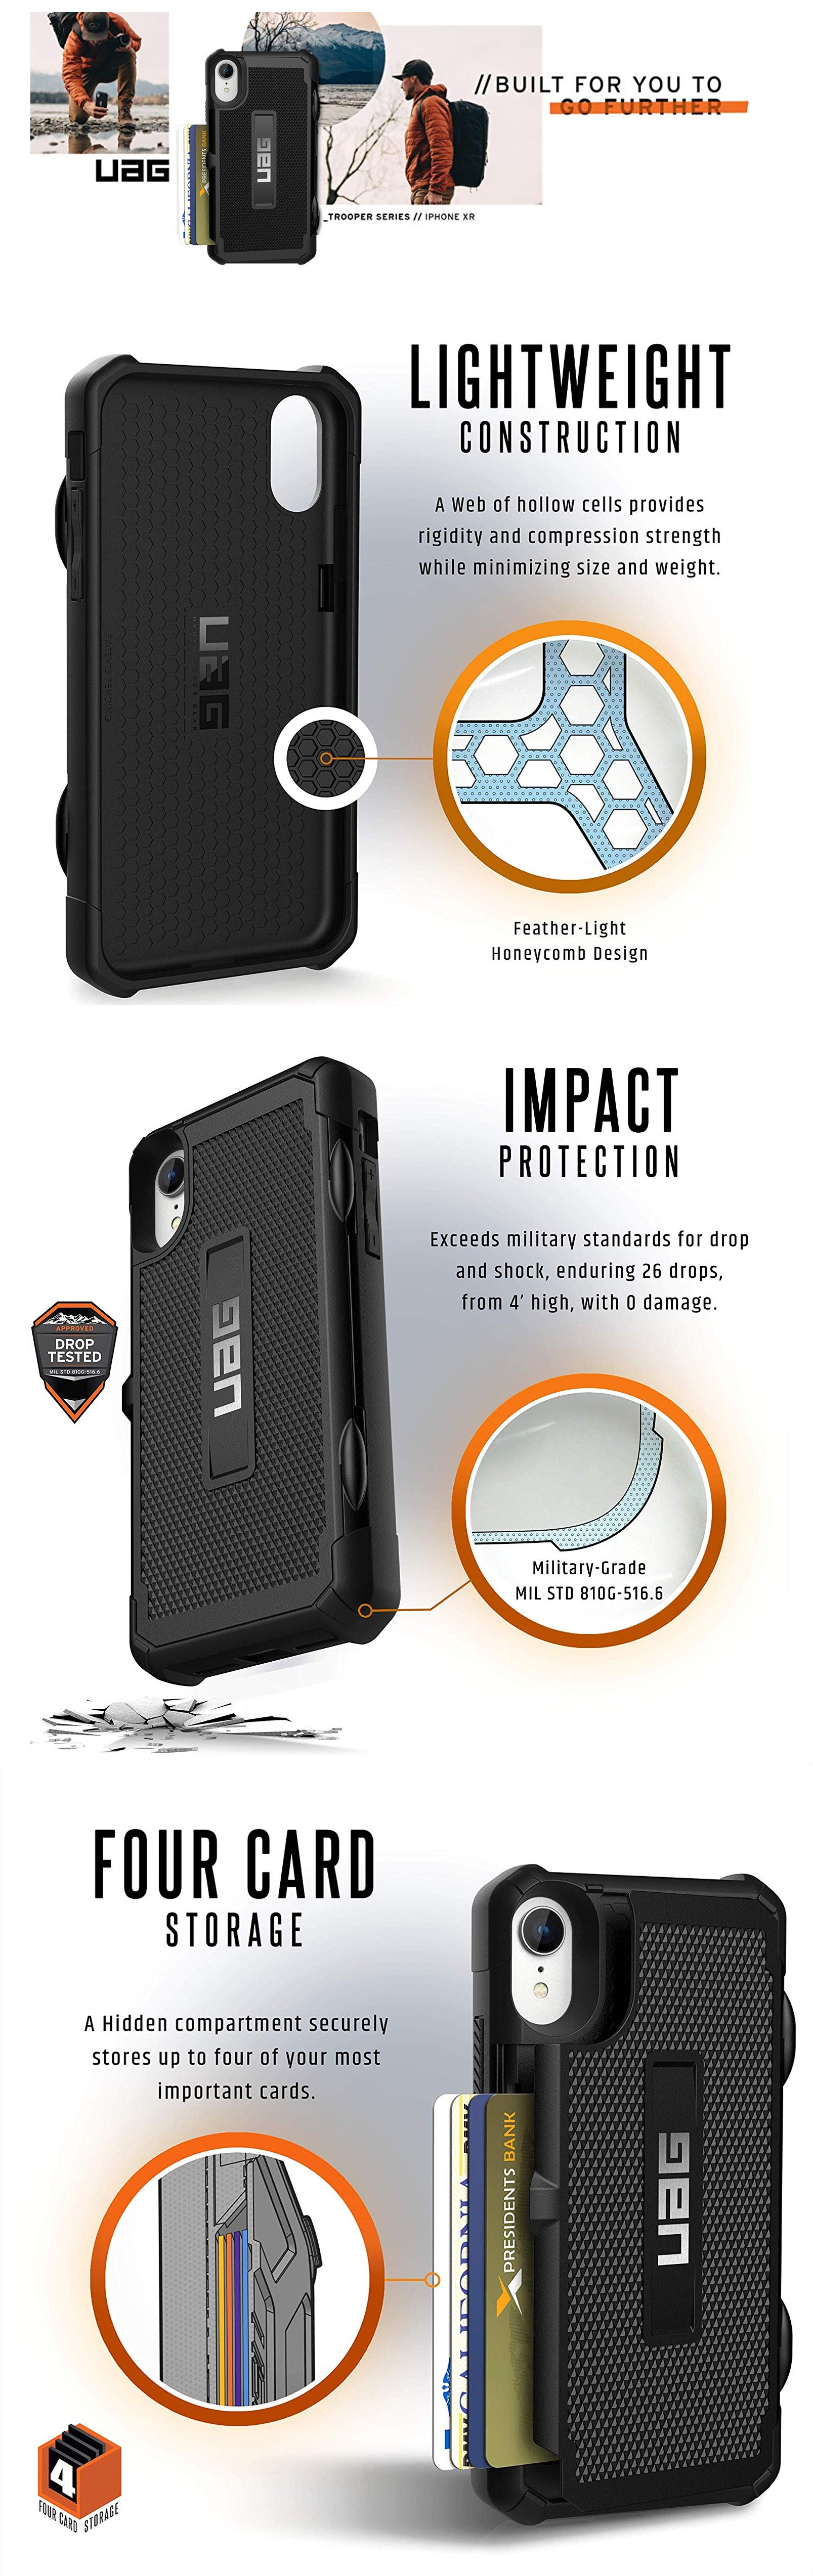 /UAG/812451030129/1-DES-fx-uag-trooper-iphone-xs-max-military-drop-test-standards-holds-4-credit-cards-black-812451030273-color-forexengineer-malaysia-authorised-retailer